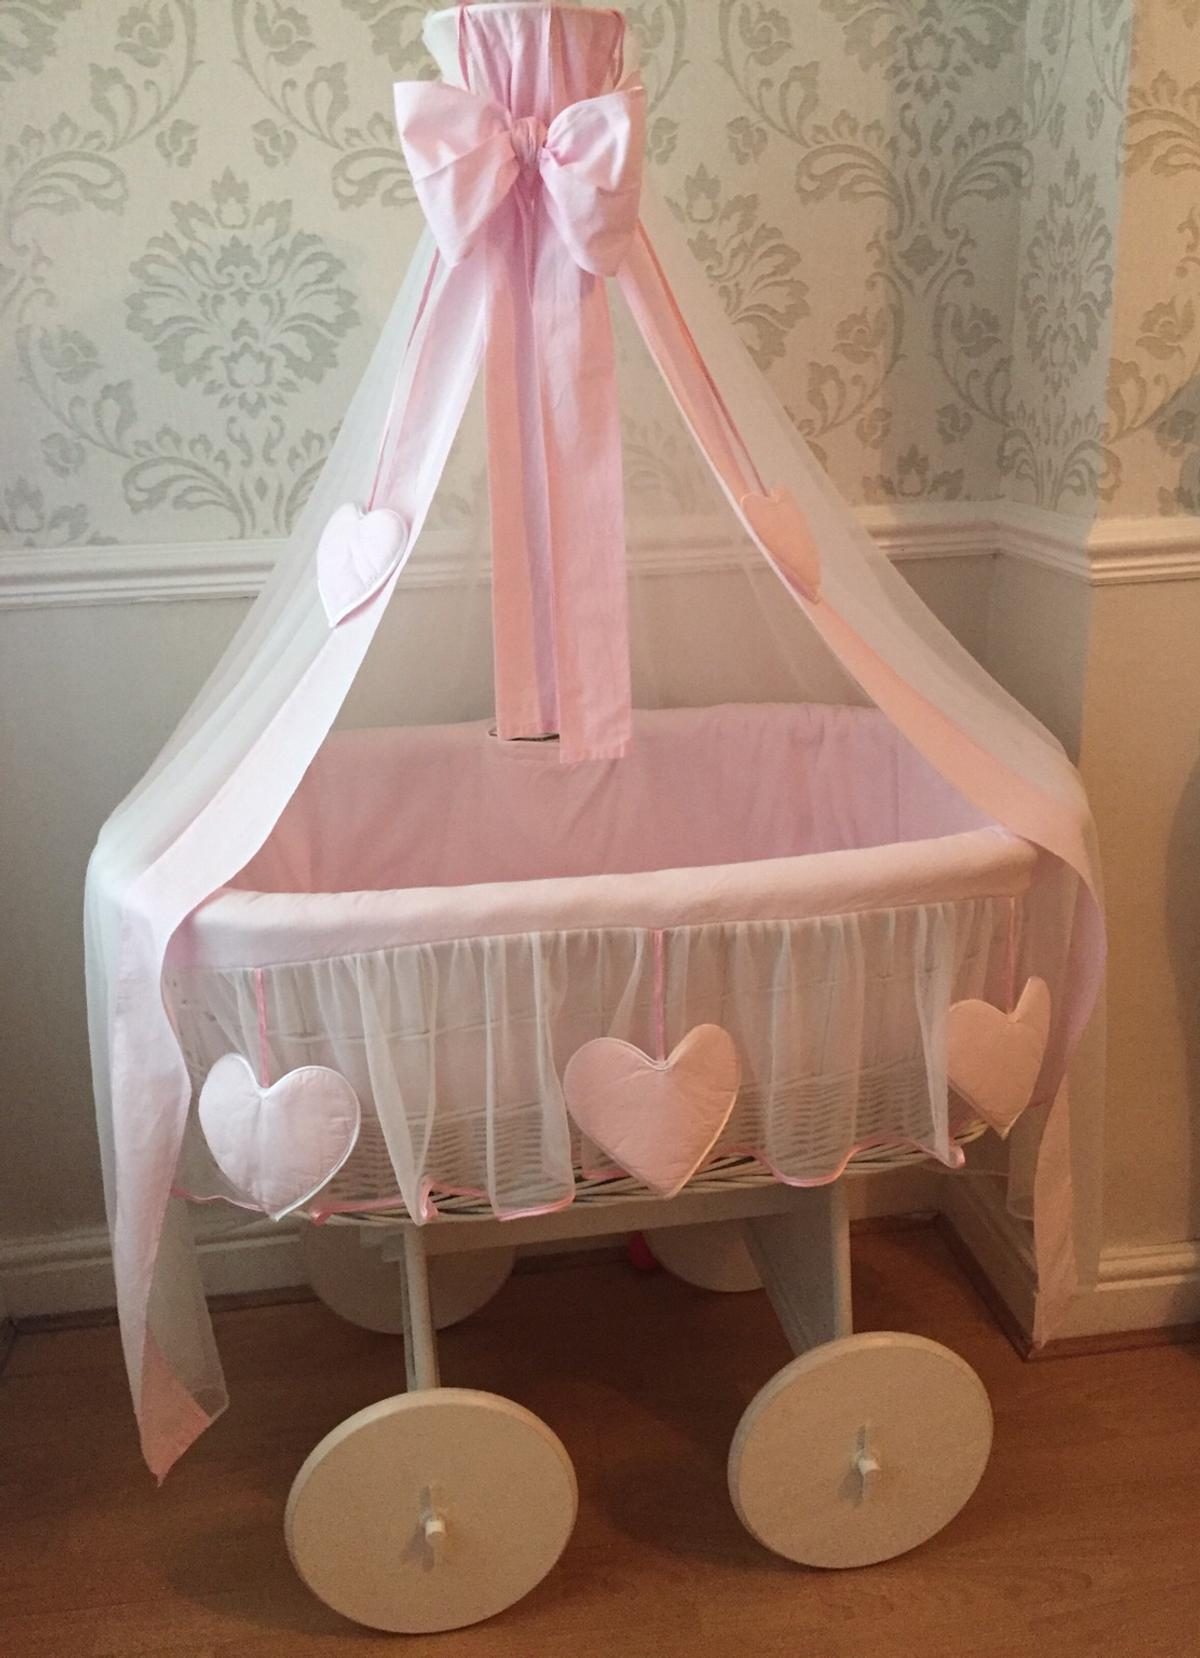 New Replacement White Bedding Set//Covers Only with Hearts for My Sweet Baby Wicker Crib with Hood